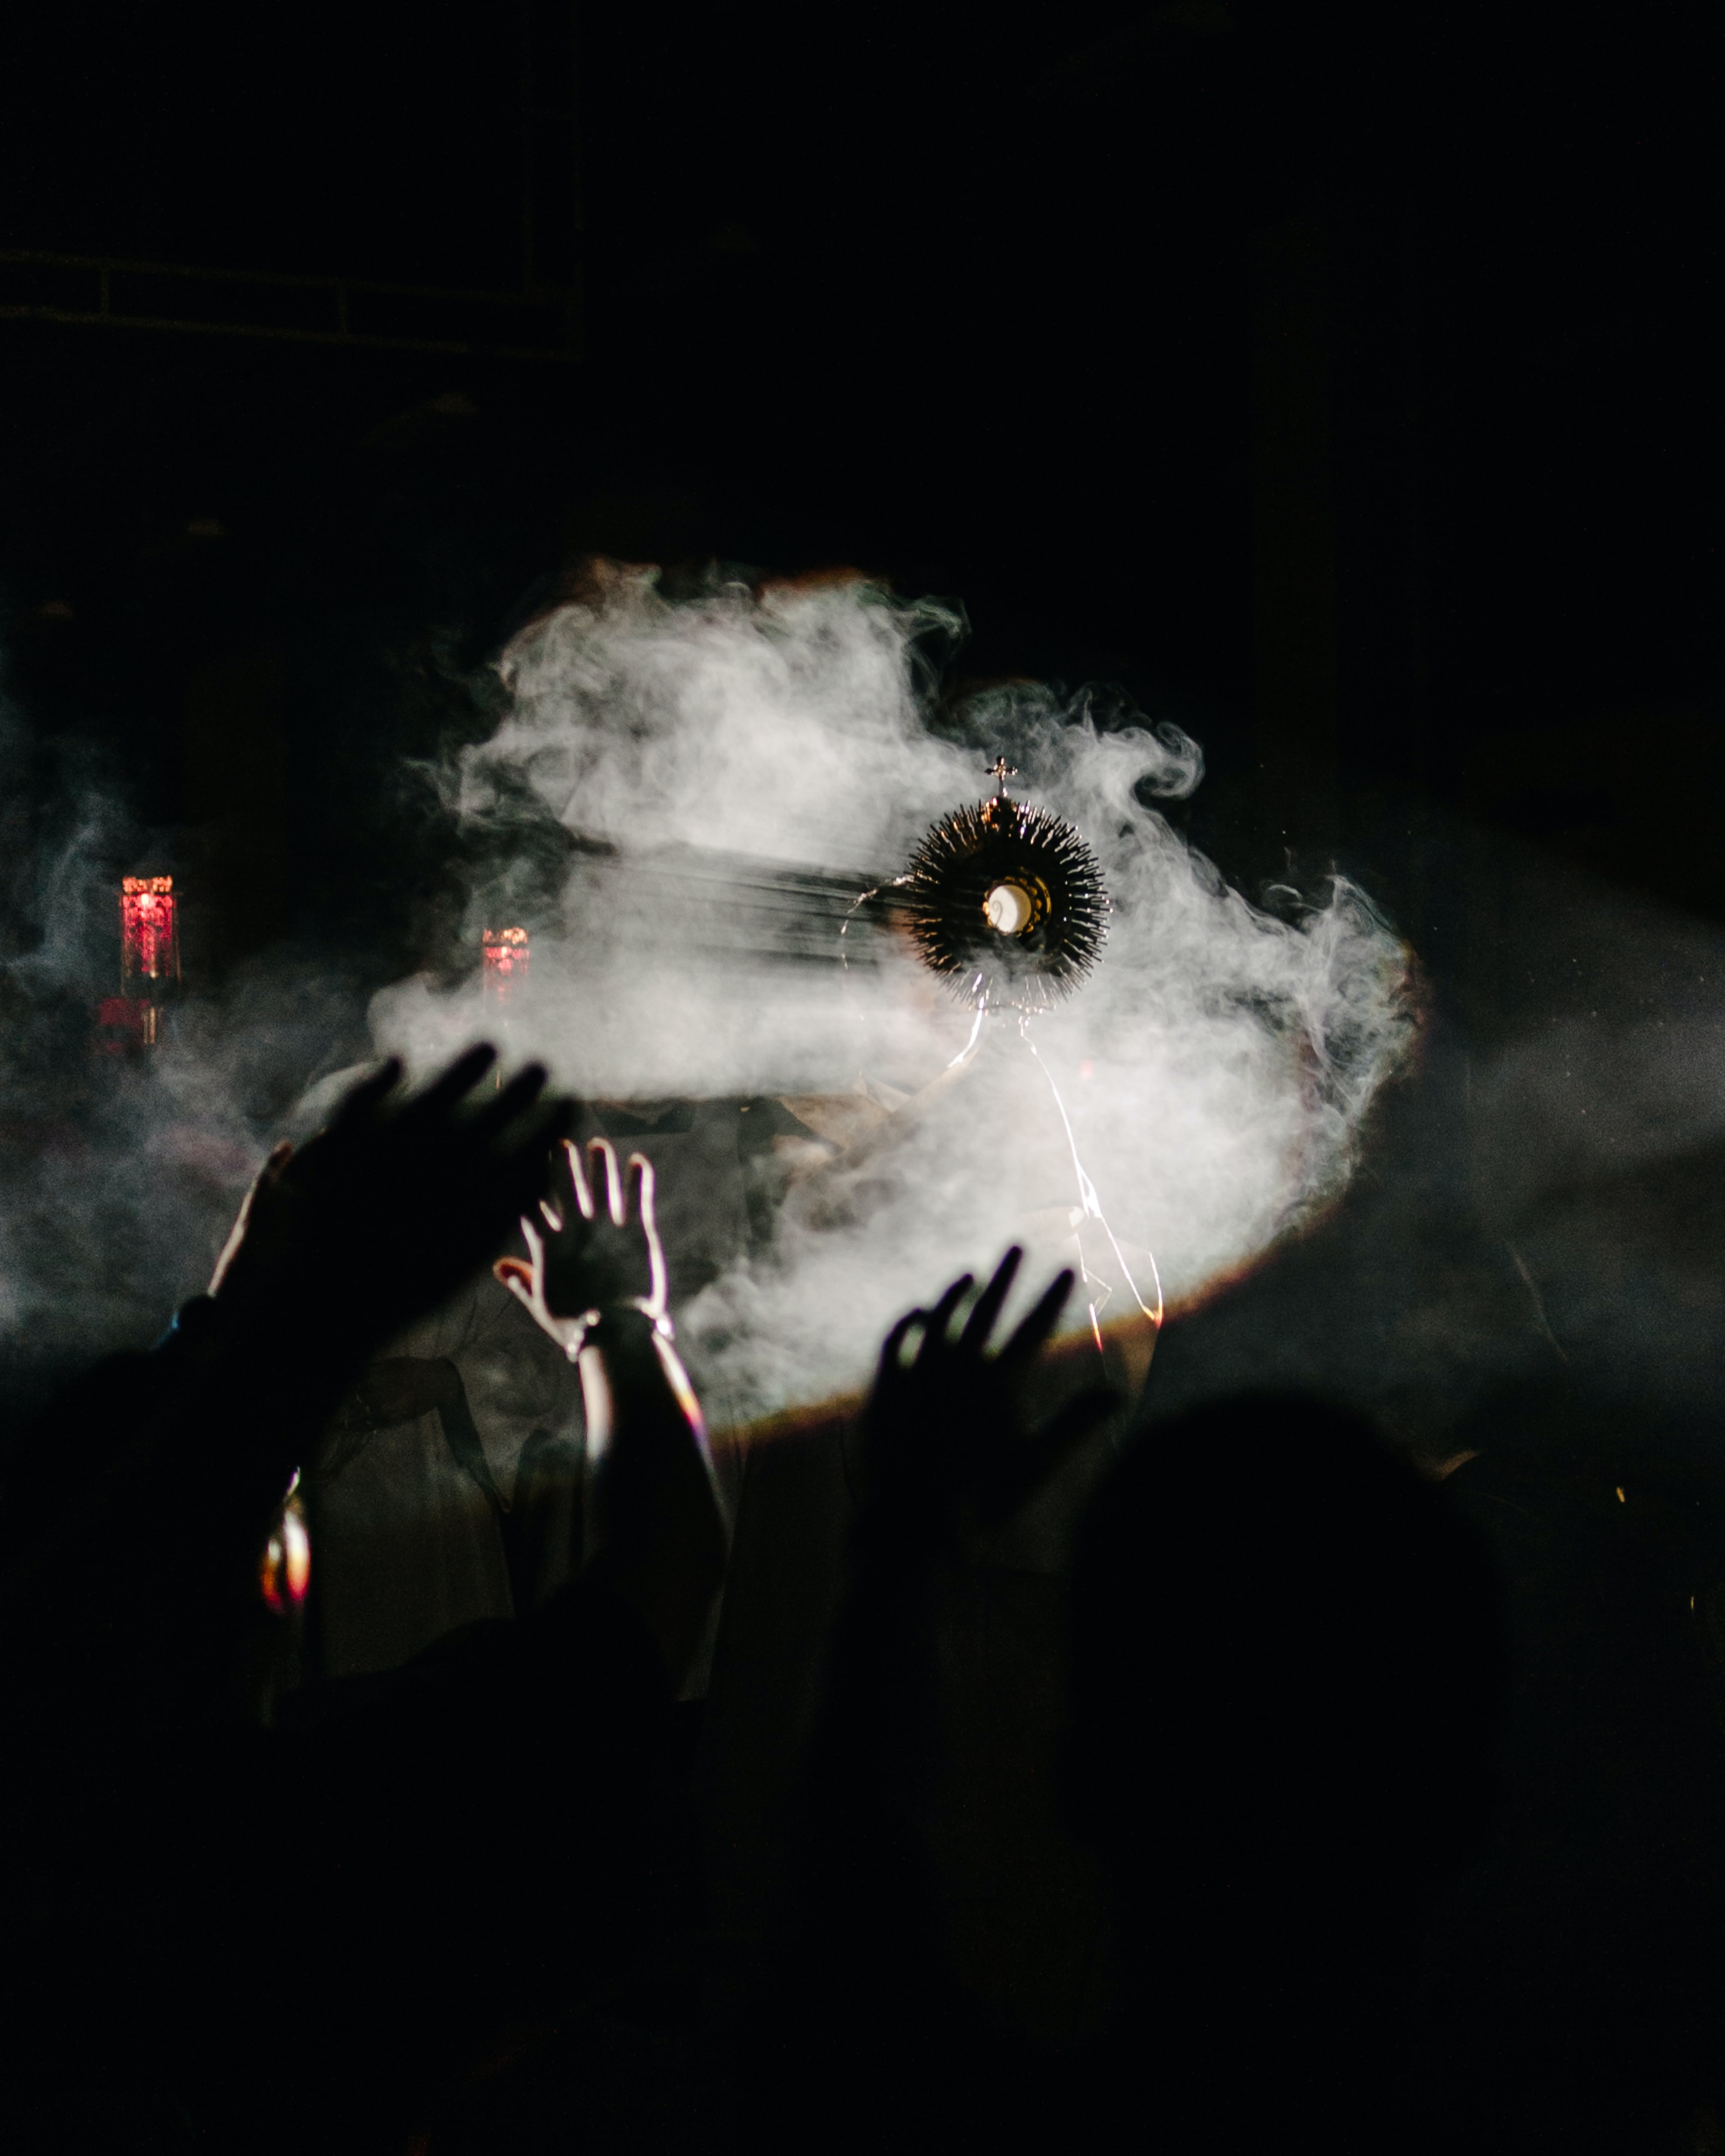 A religious object held up in front of a fog machine, with a crowd raising their hands.